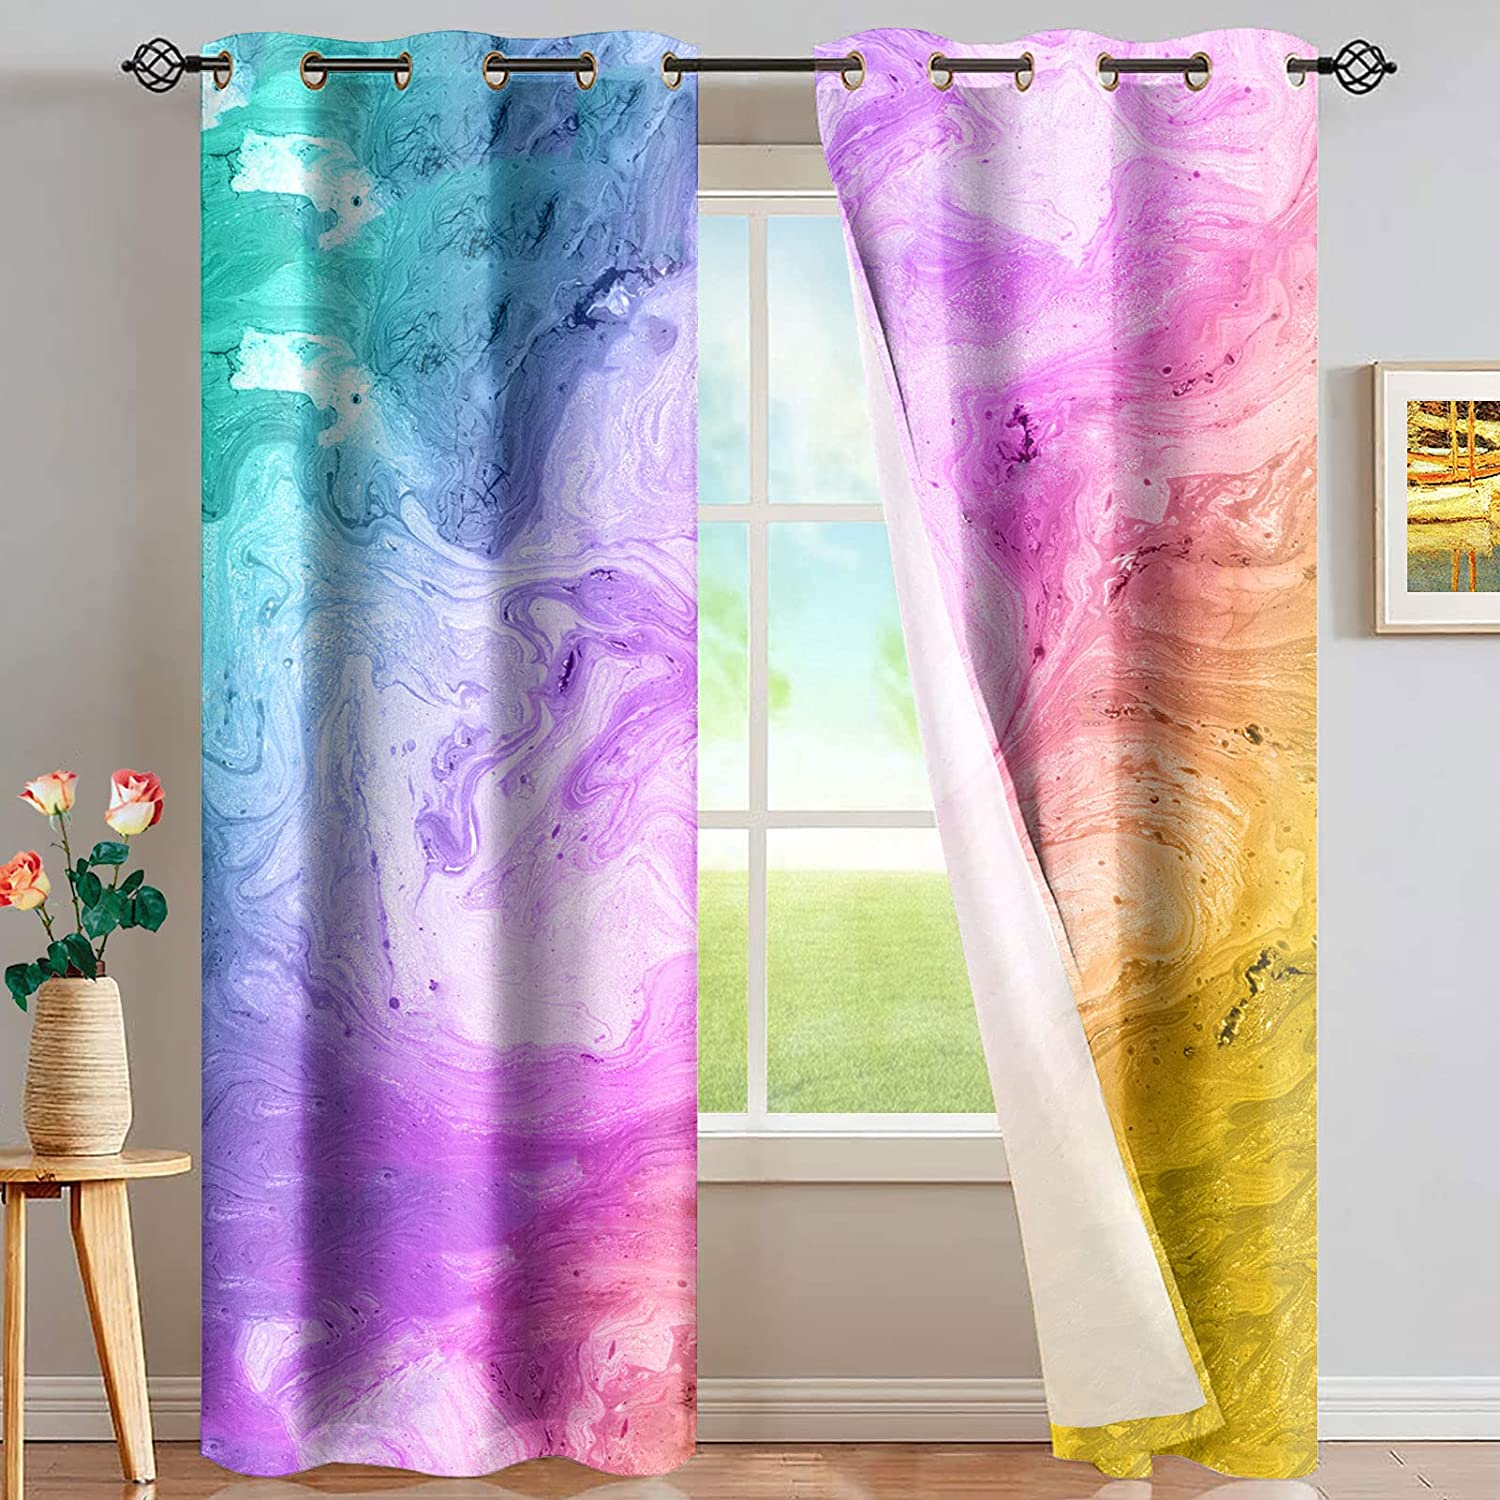 QIZHAOLAN Same day shipping Colorful Max 63% OFF Marble Blackout Curtain Gro Treatments Window